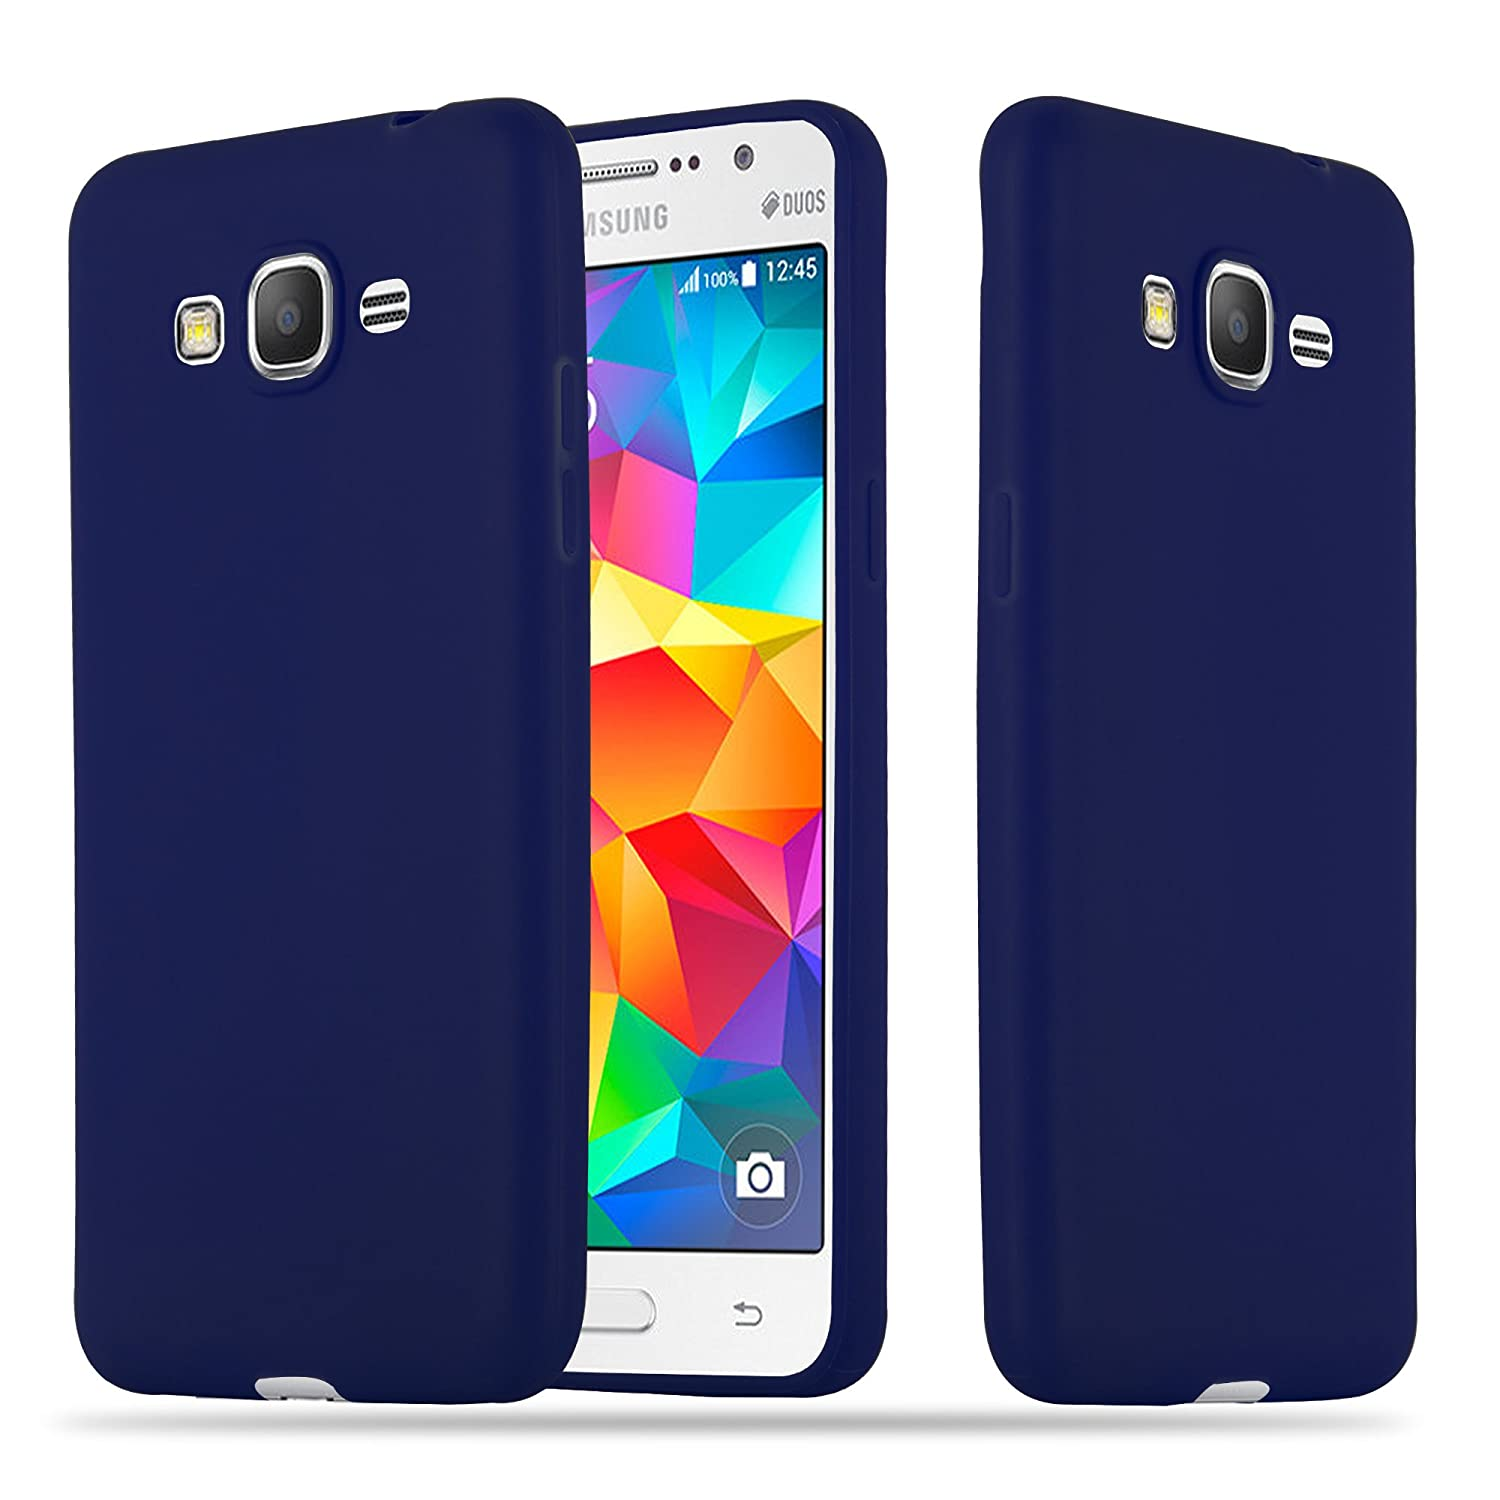 Cadorabo Case Works with Samsung Galaxy Grand Prime in Candy Dark Blue – Shockproof and Scratch Resistant TPU Silicone Cover – Ultra Slim Protective ...